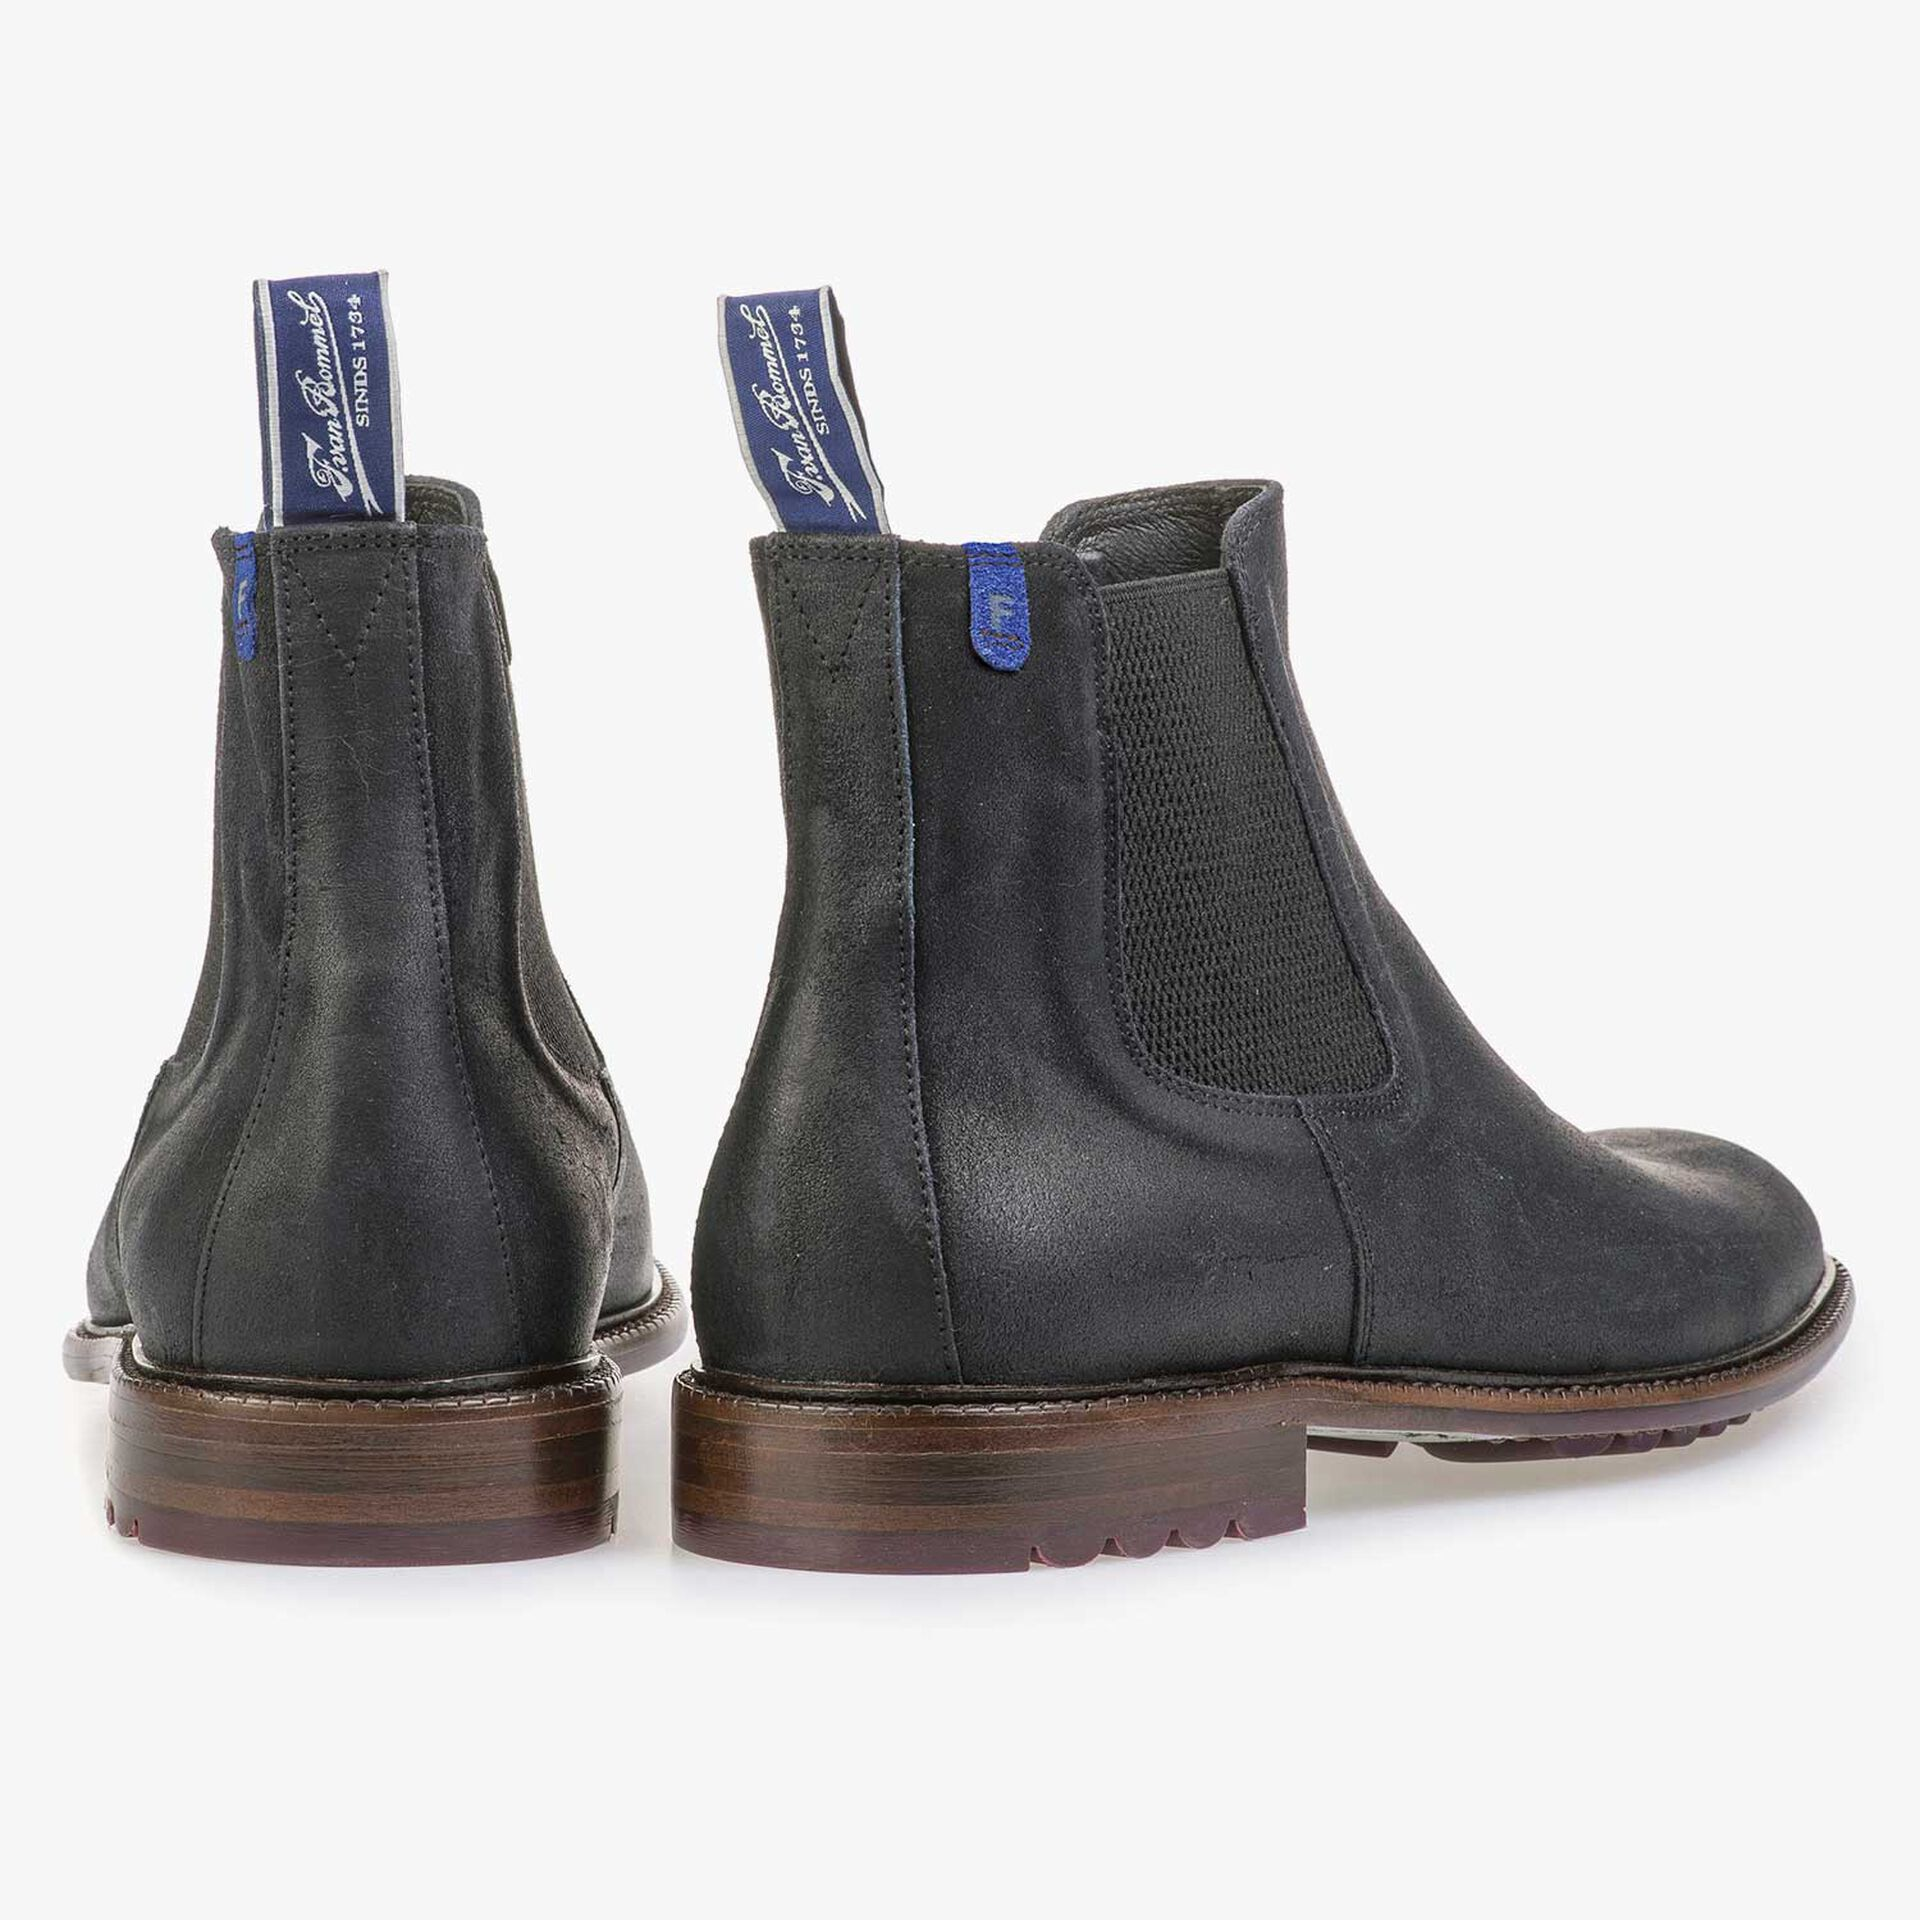 Blue suede leather Chelsea boot